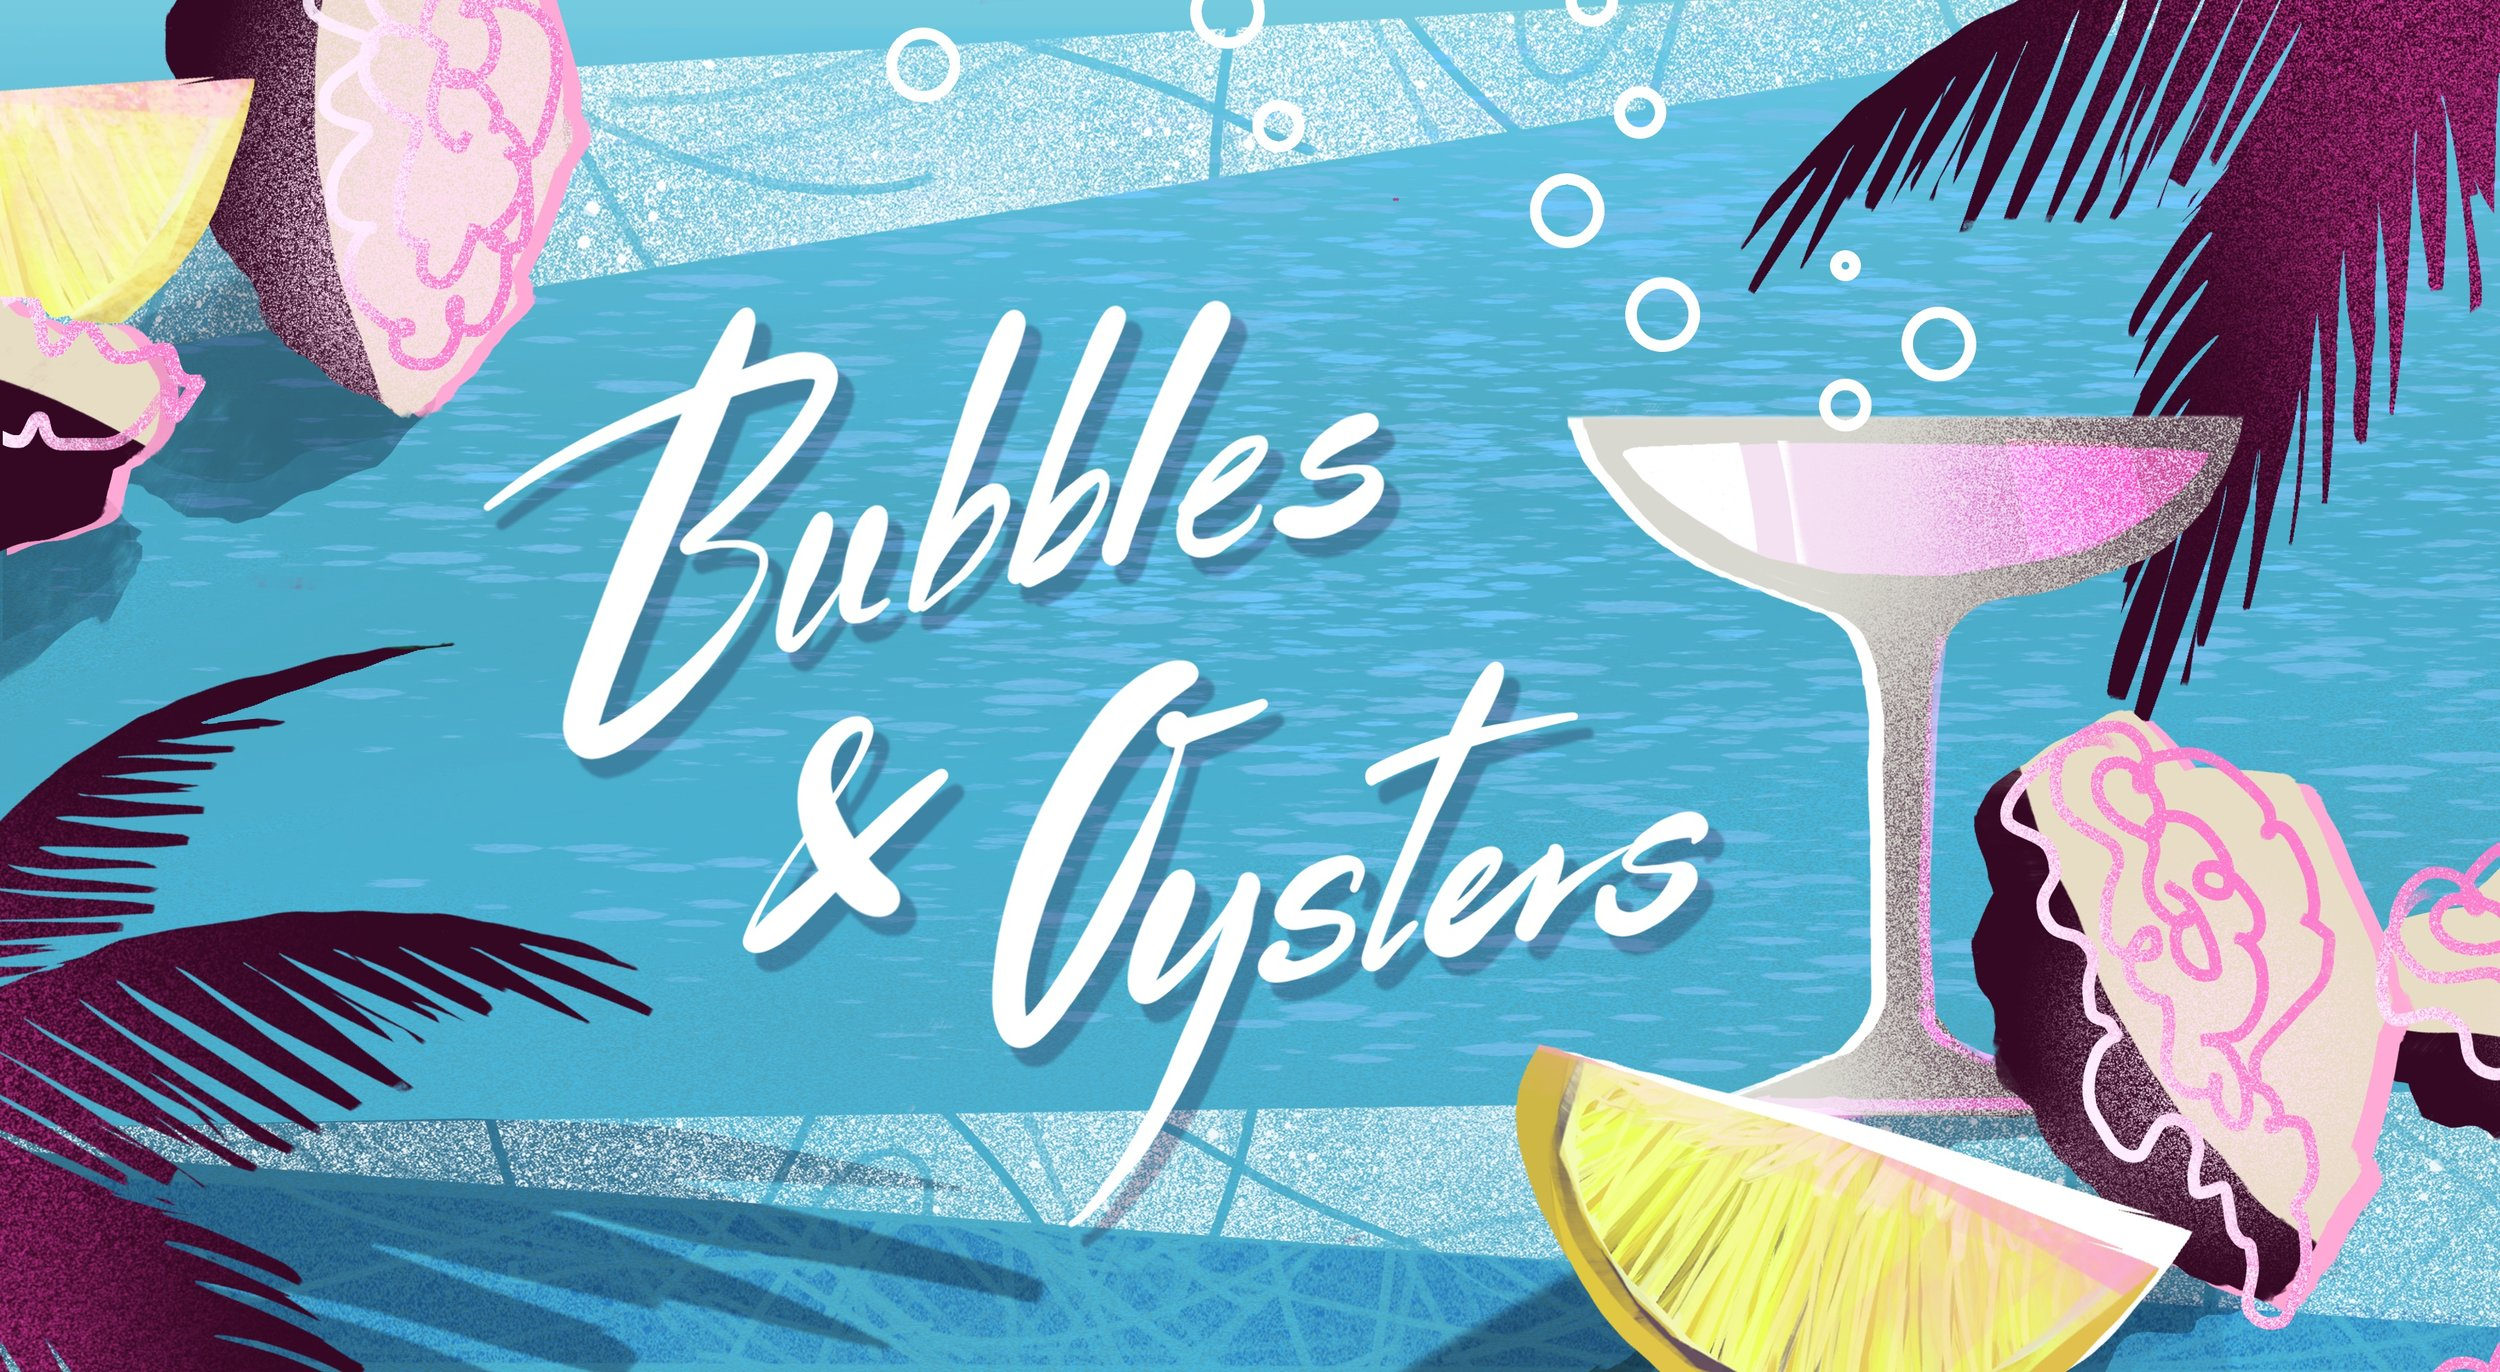 BubblesOysters_Facebook_Event_Cover (1).jpg